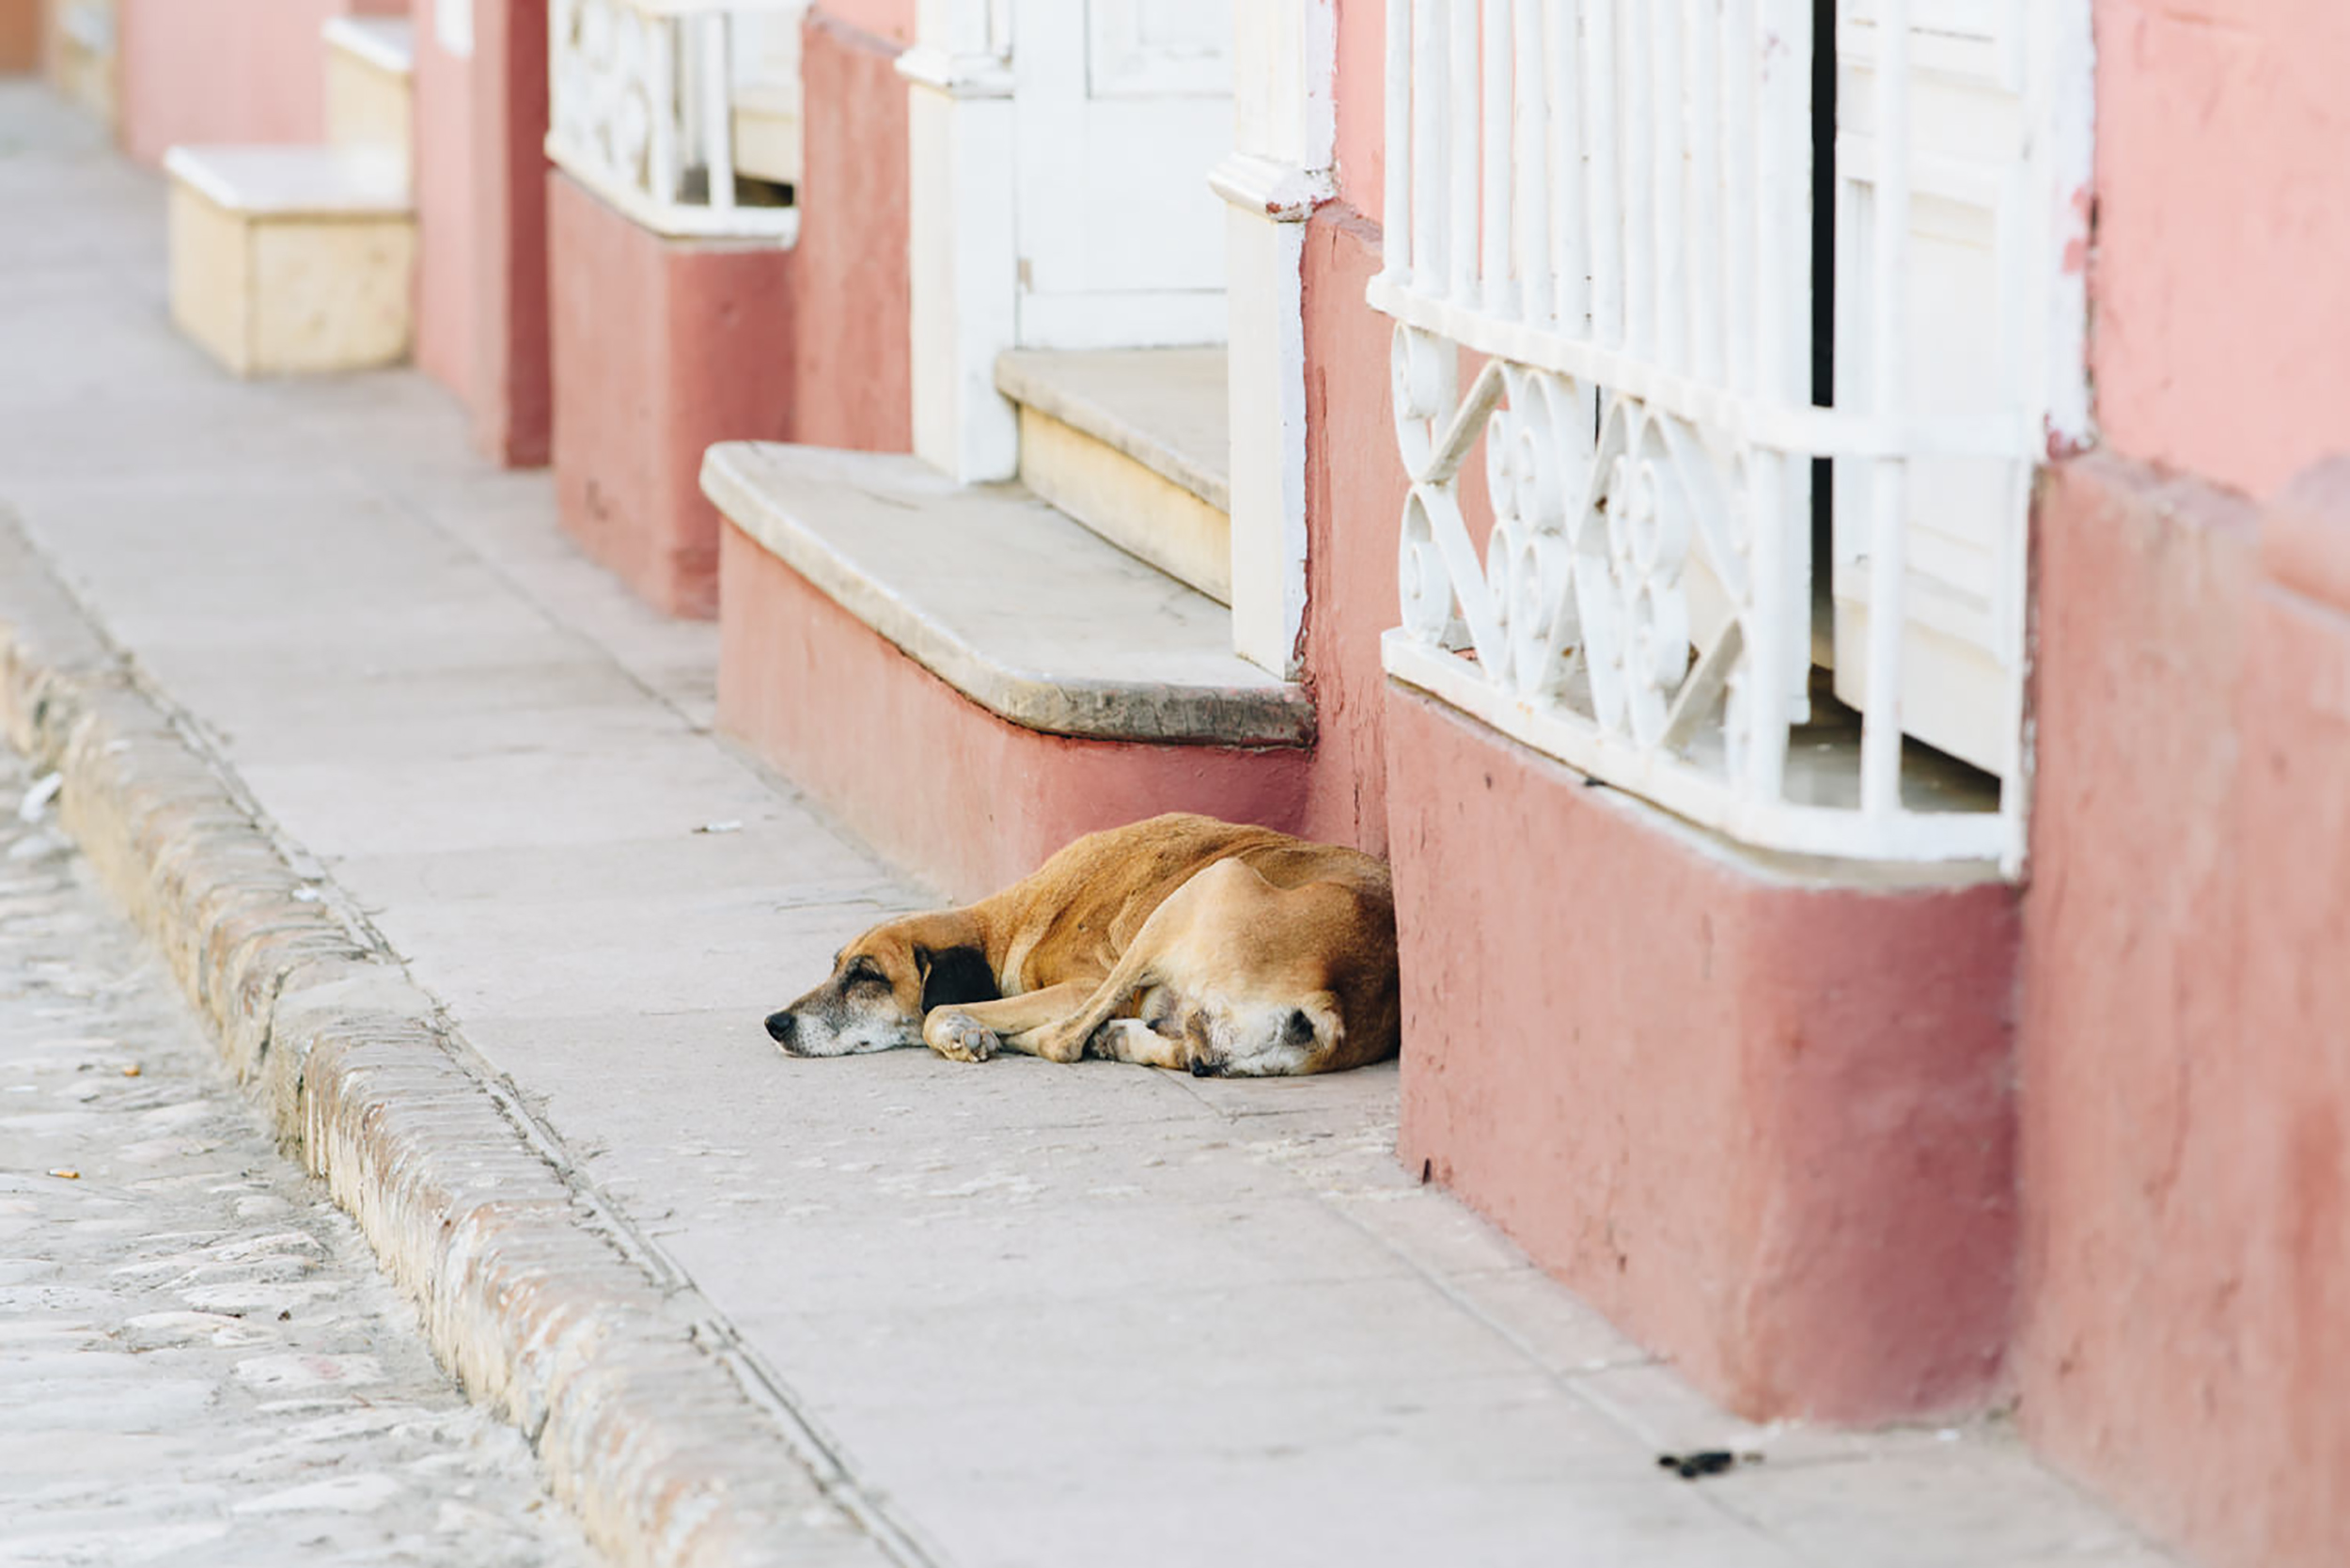 Dog sleeping on sidewalk in Cuba